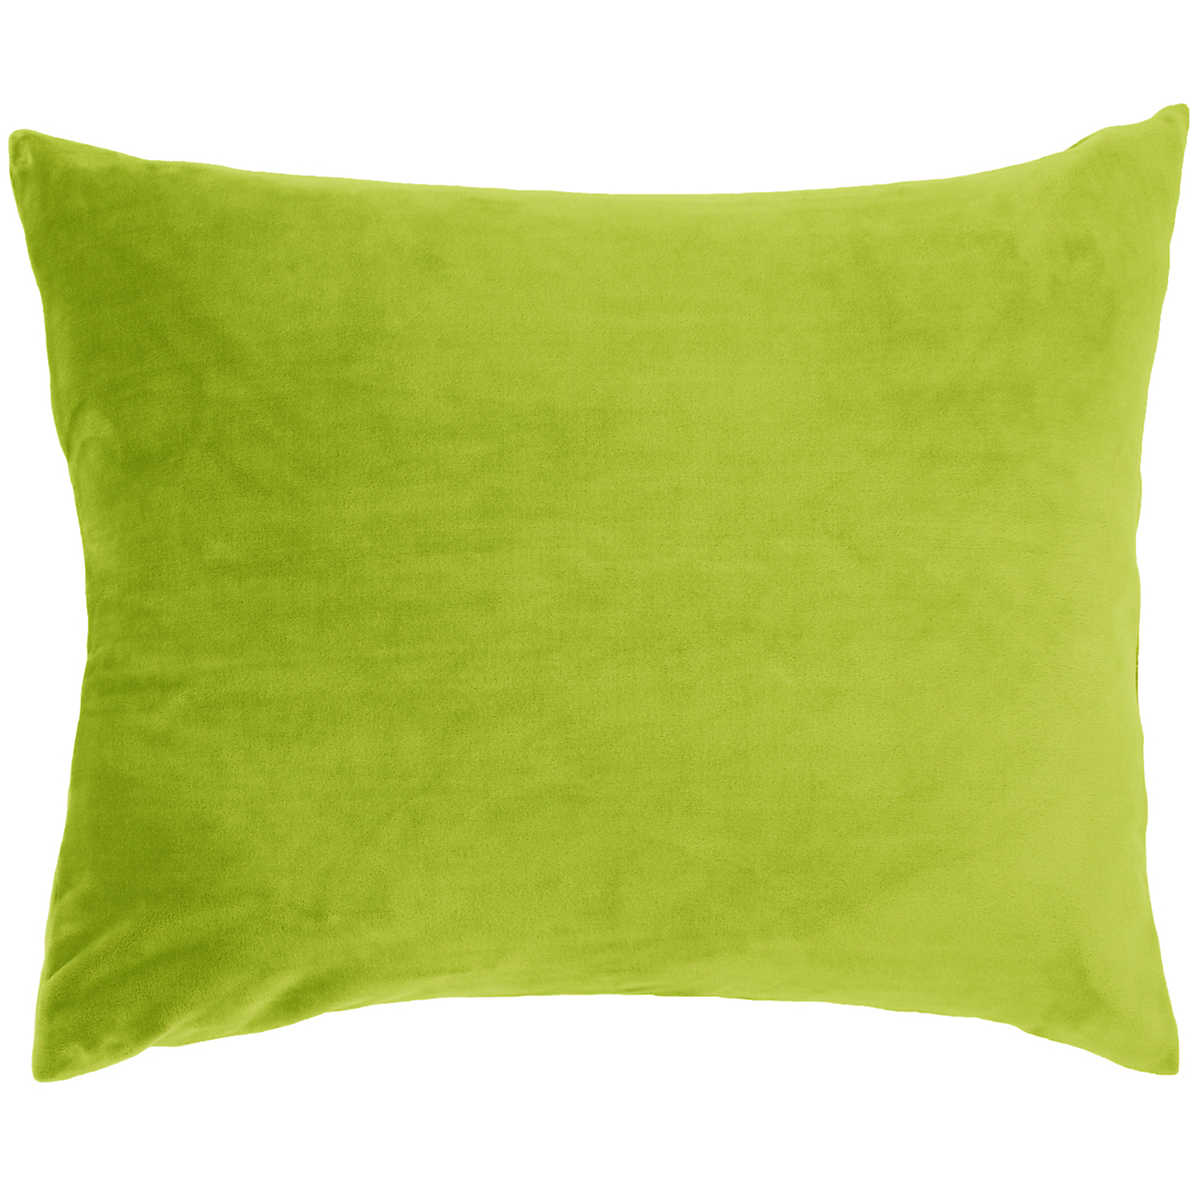 selke fleece green decorative pillow  pine cone hill -